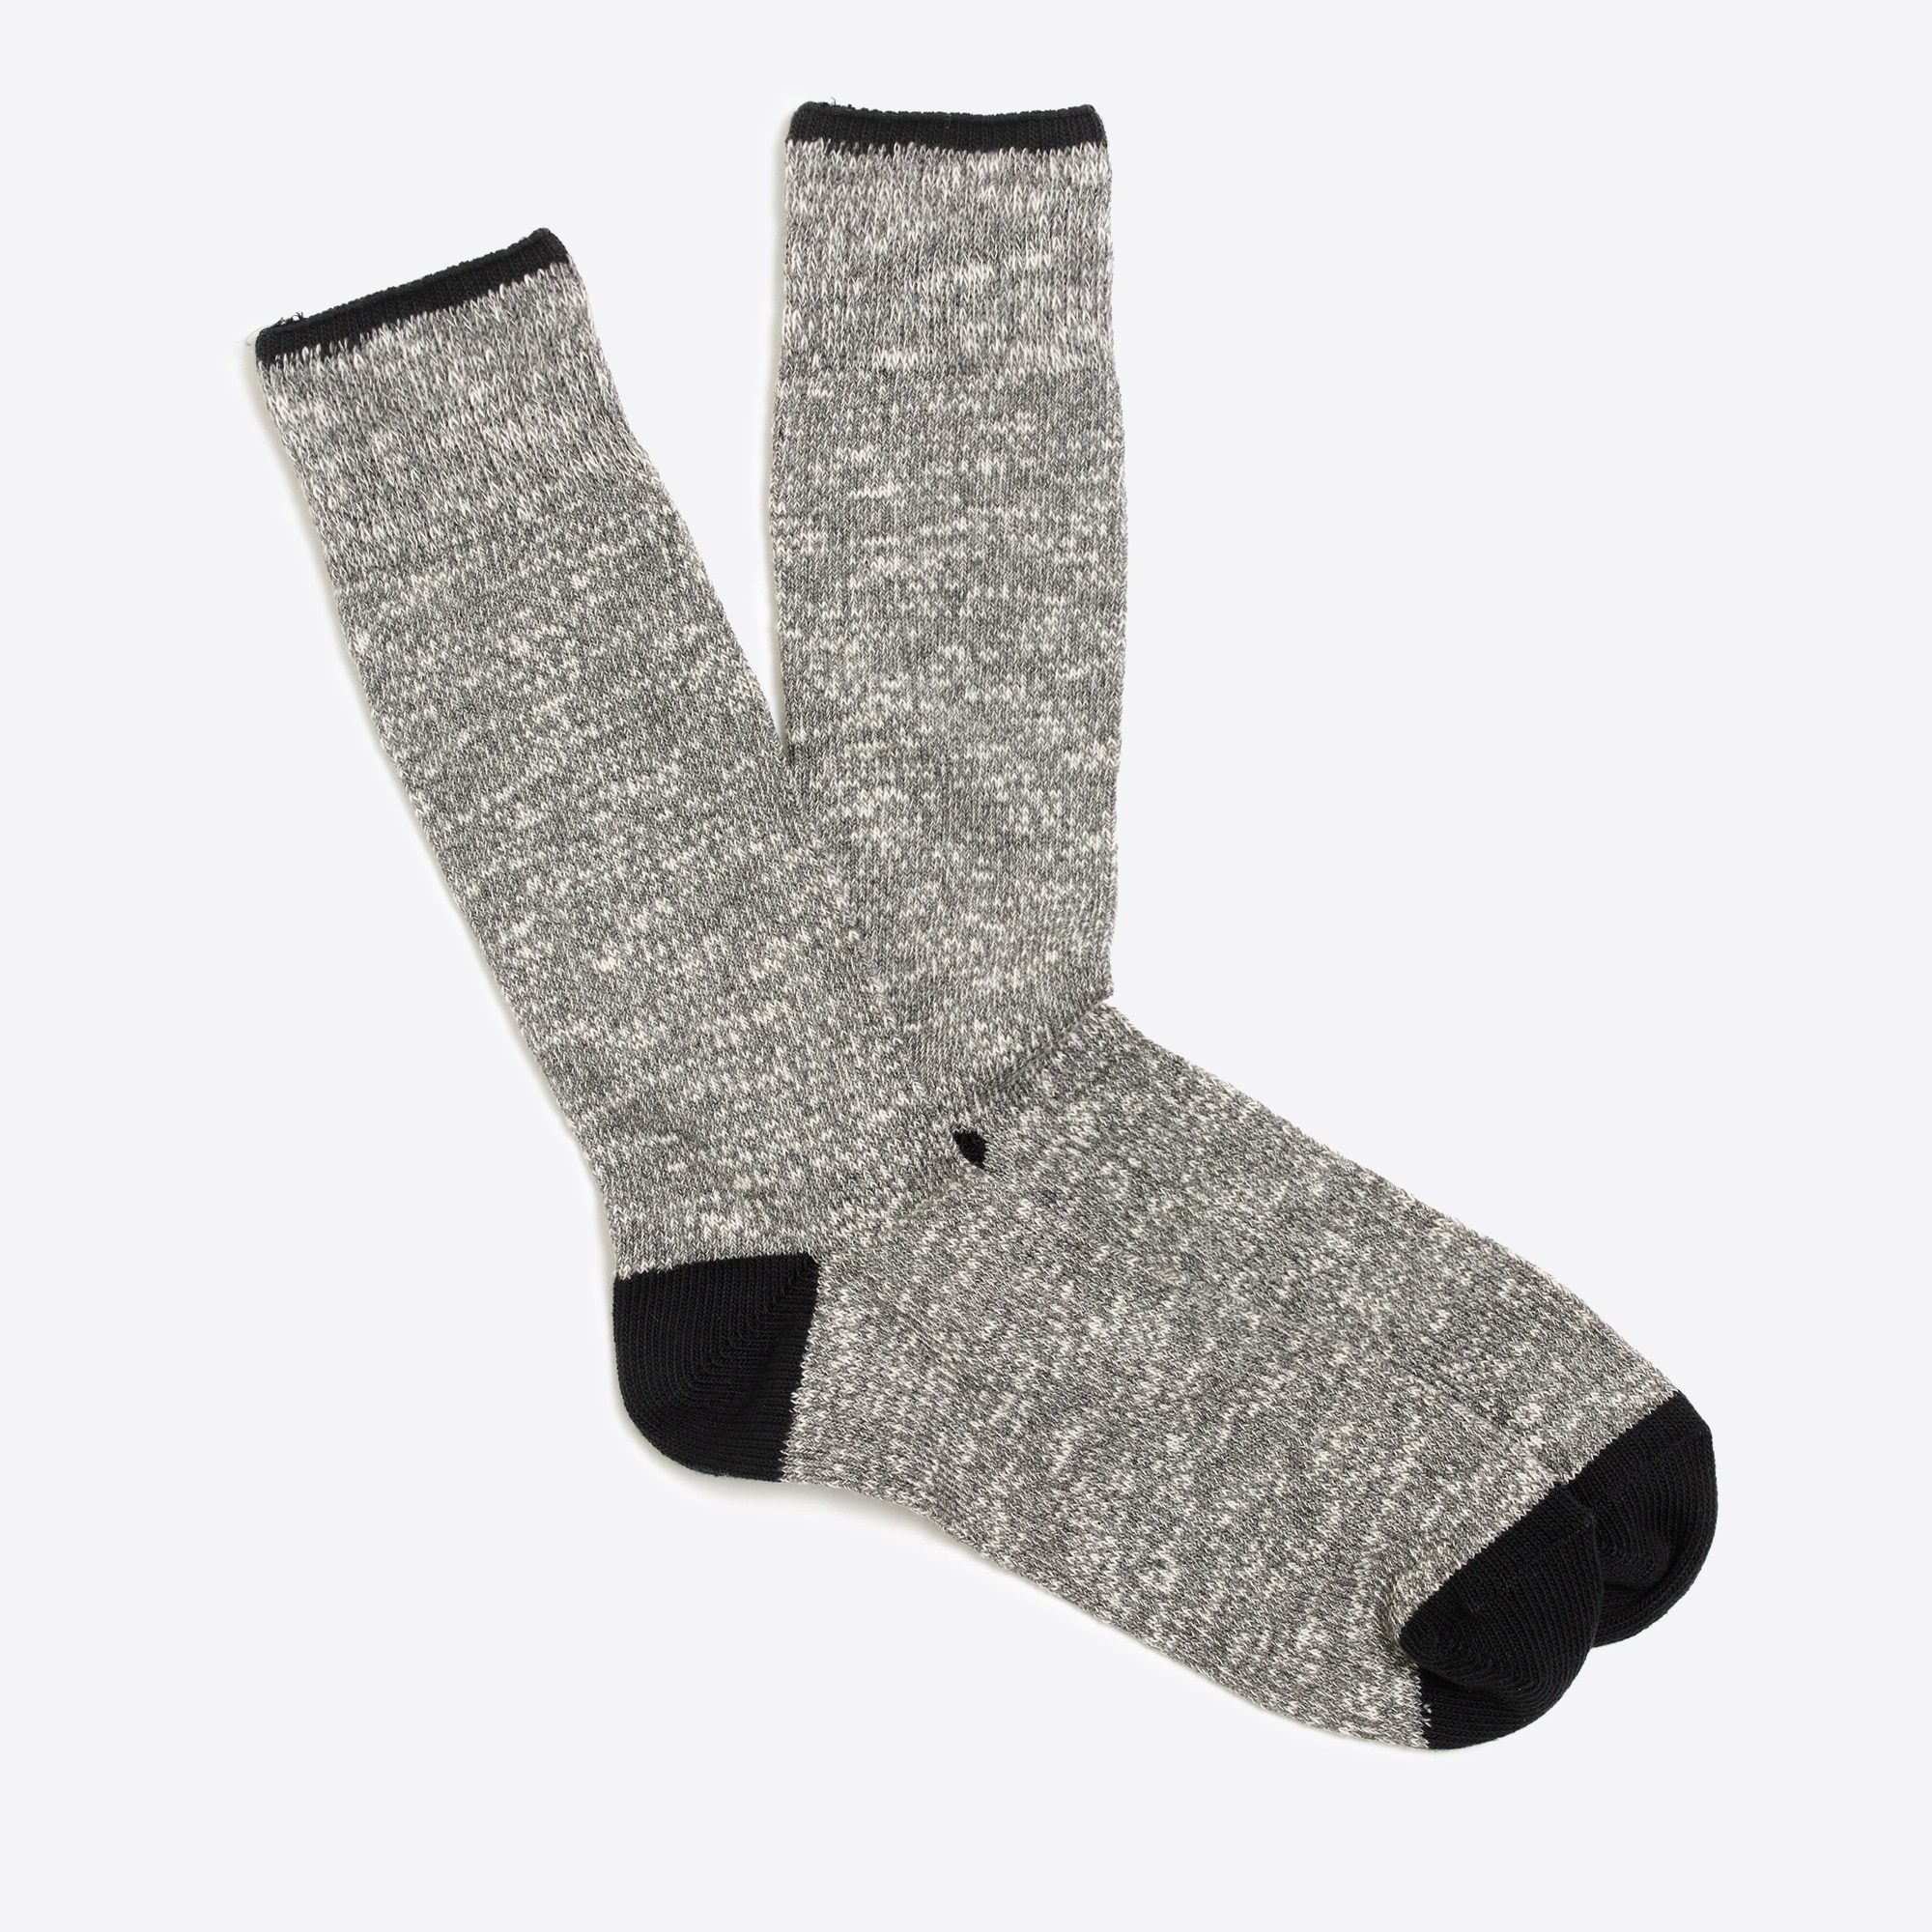 marled-cotton tipped socks : factorymen seasonal